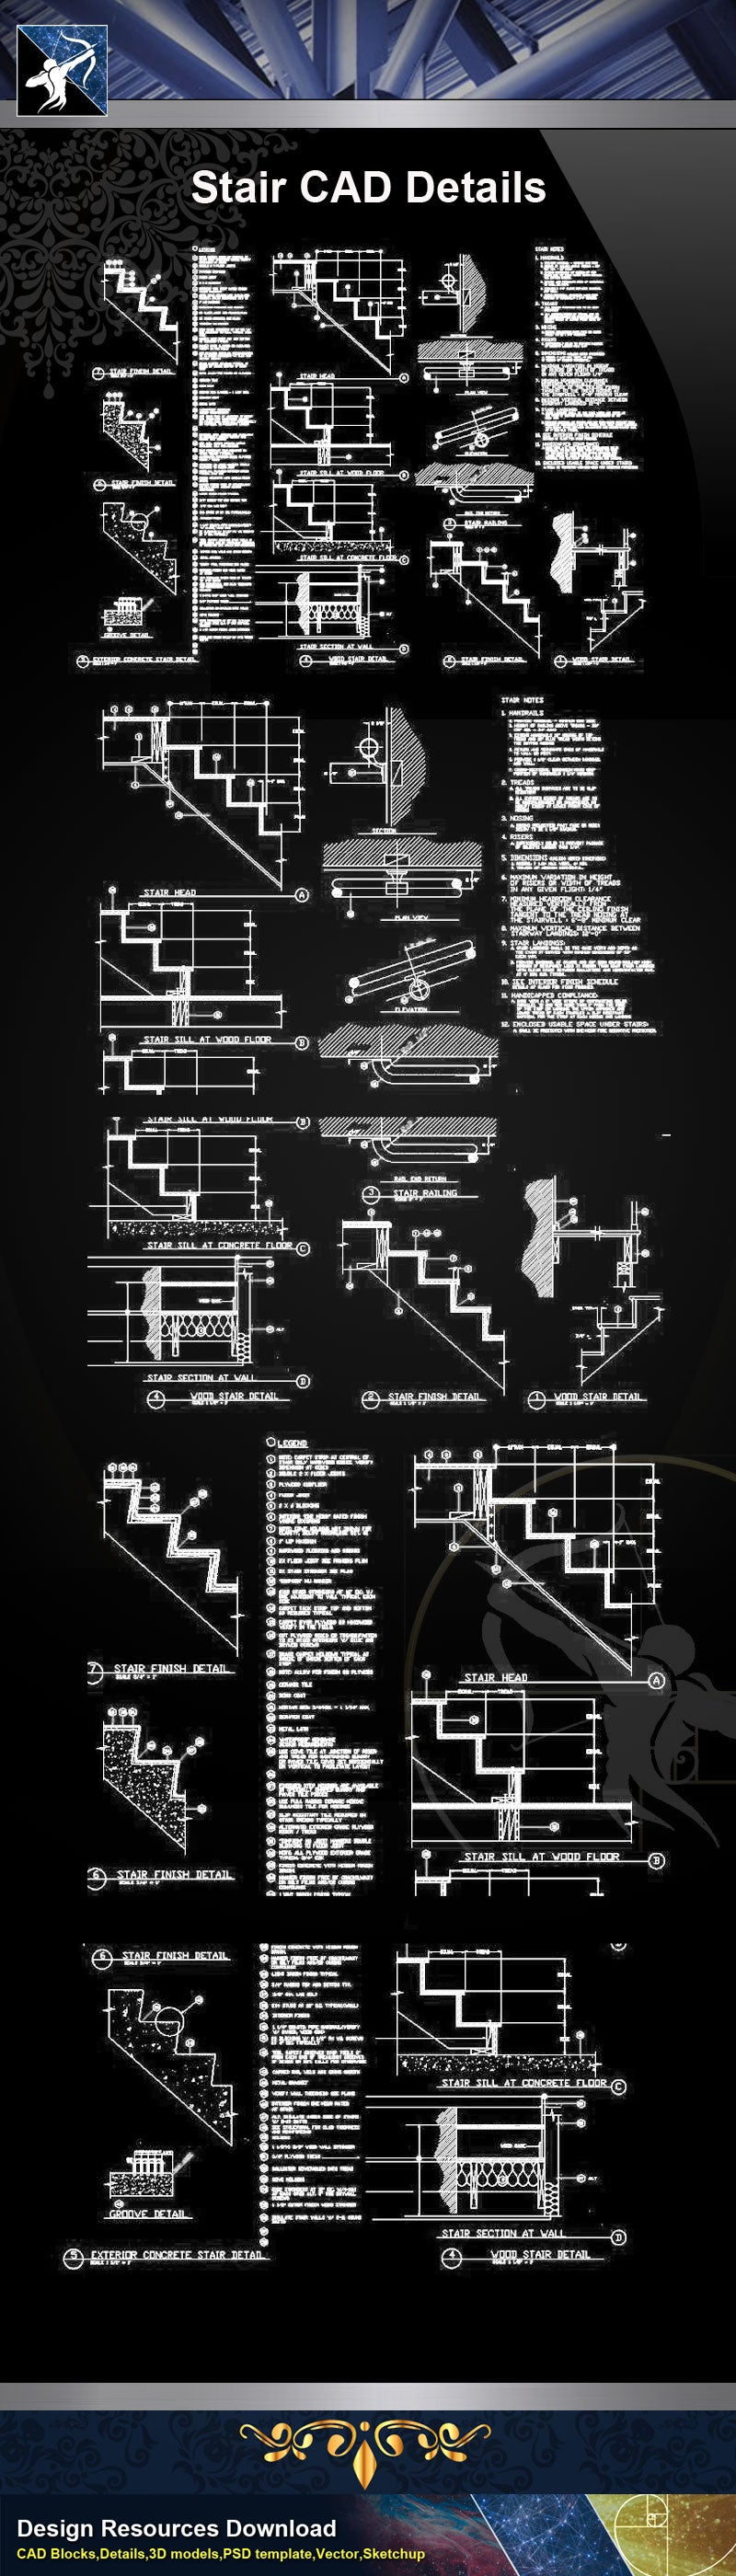 ★【Stair Details】Stair CAD Details